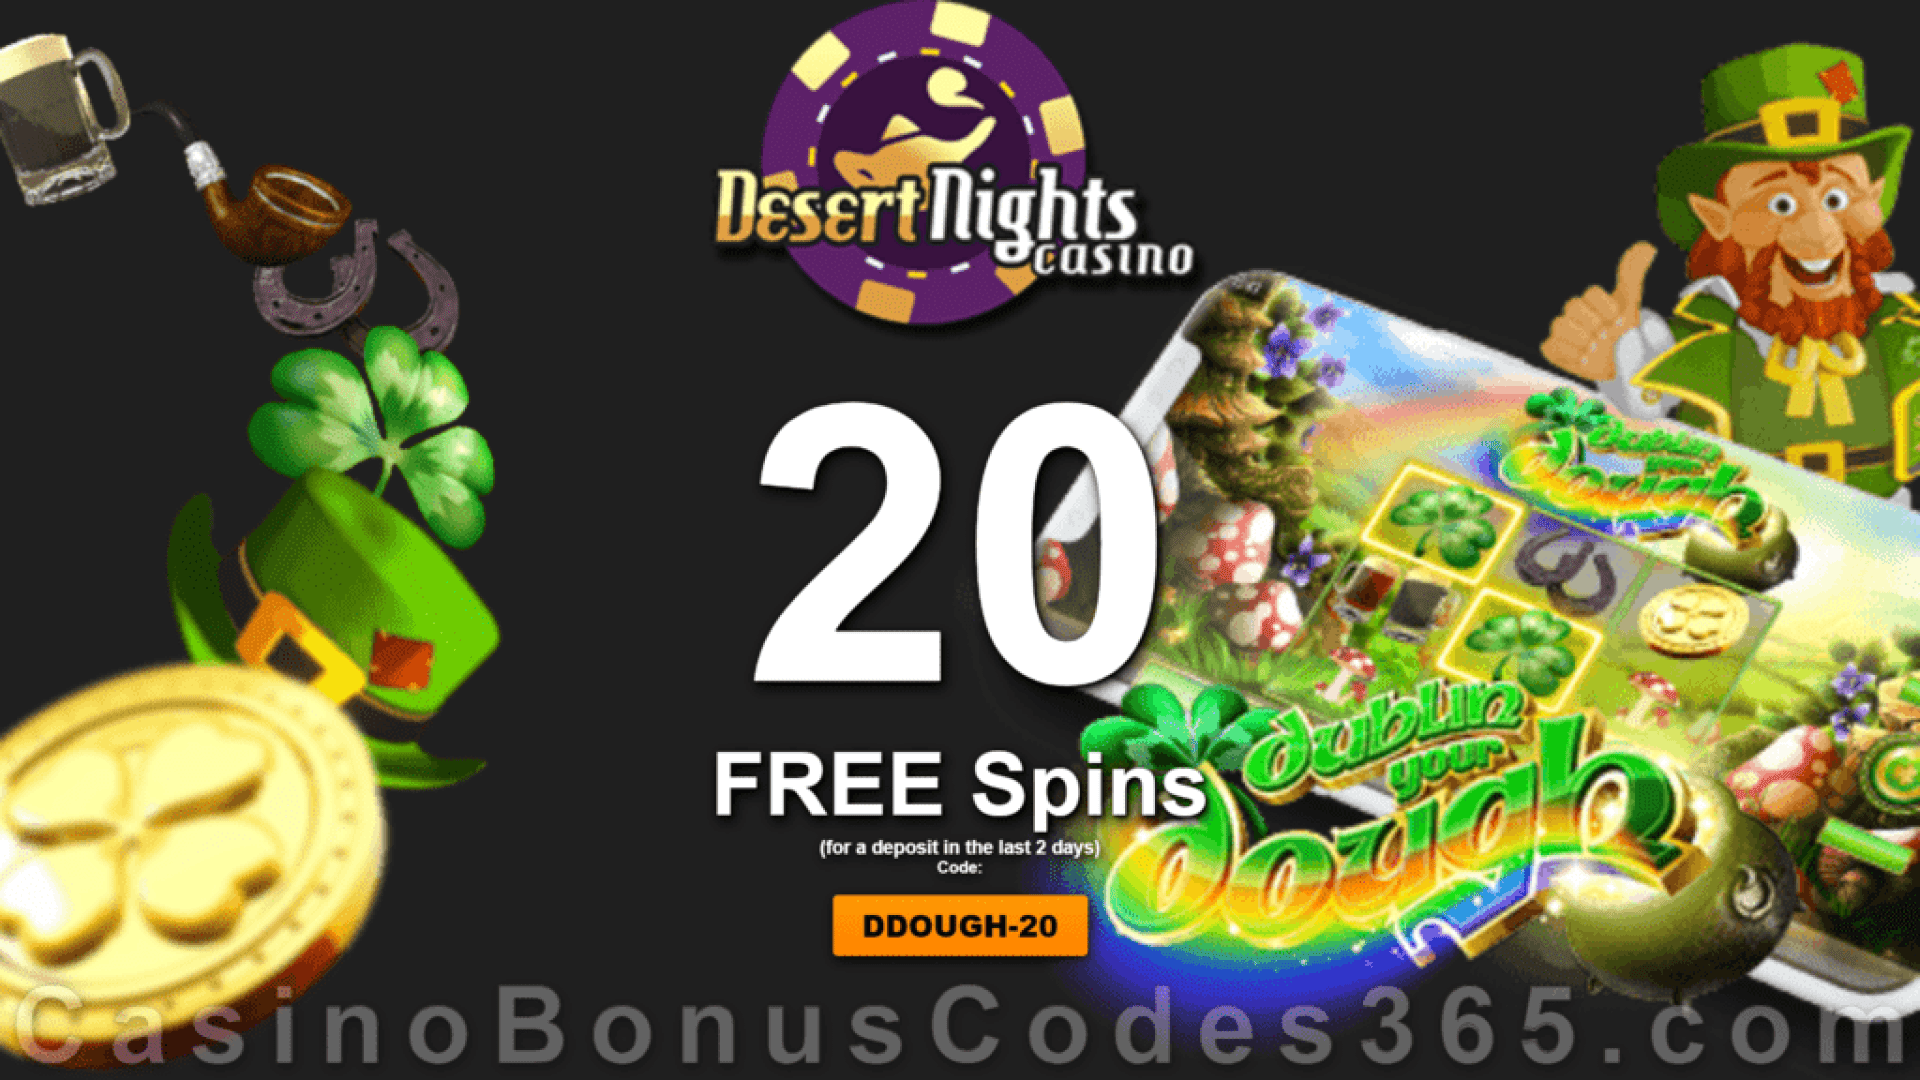 Desert Nights Casino 20 FREE Spins on Rival Gaming Dublin your Dough St. Patrick's Day Special Deal